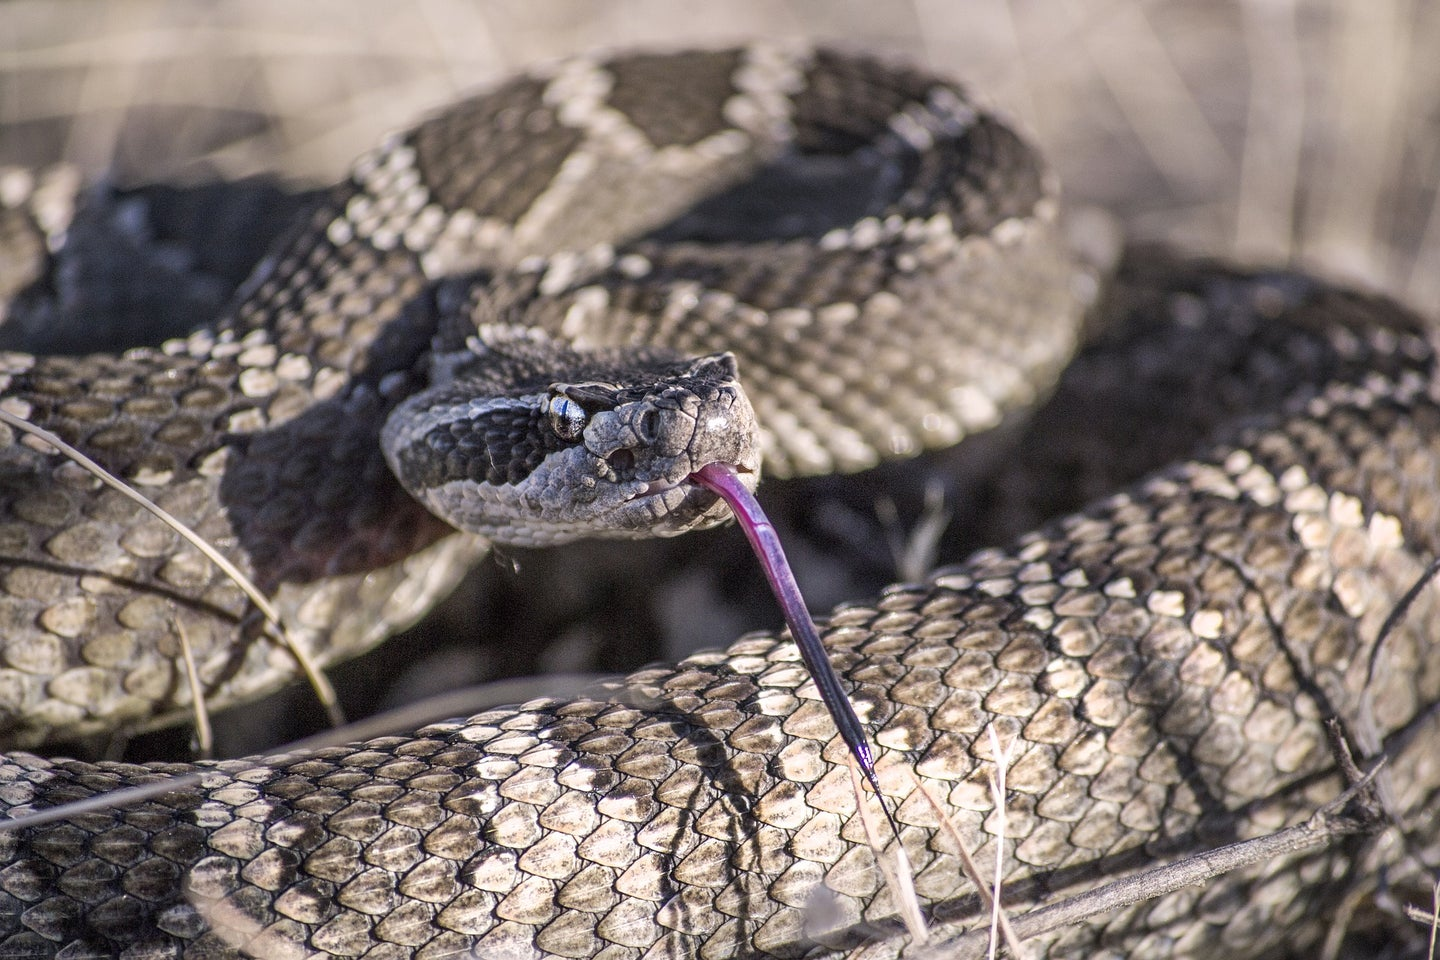 A coiled up rattlesnake ready to strike.